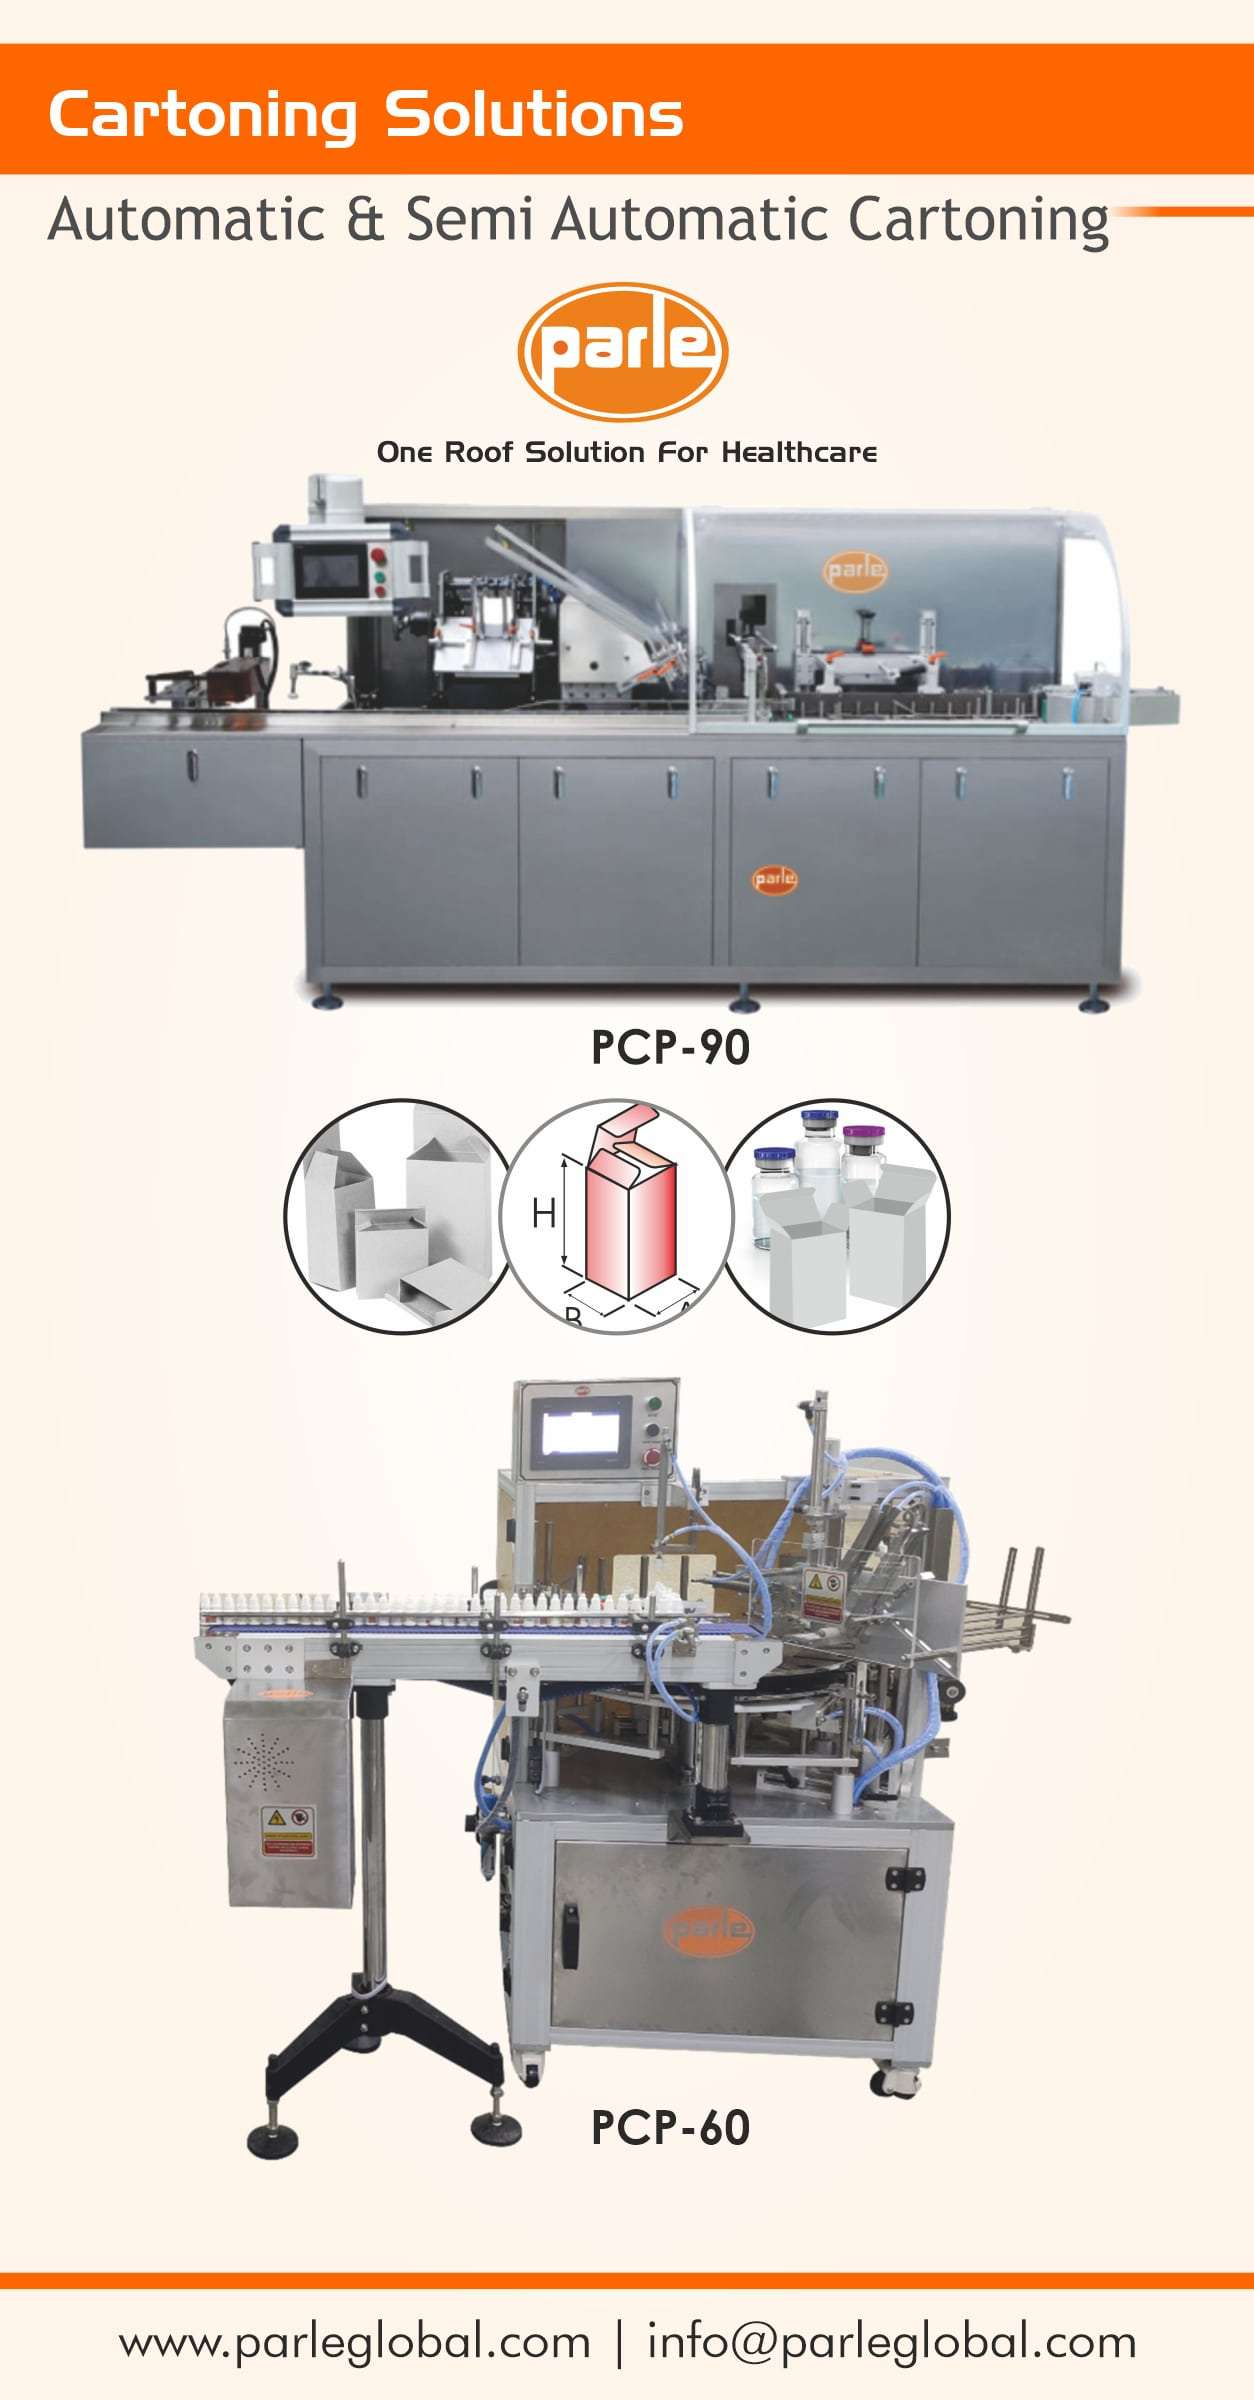 Semi Automatic and Automatic Cartoning solutions